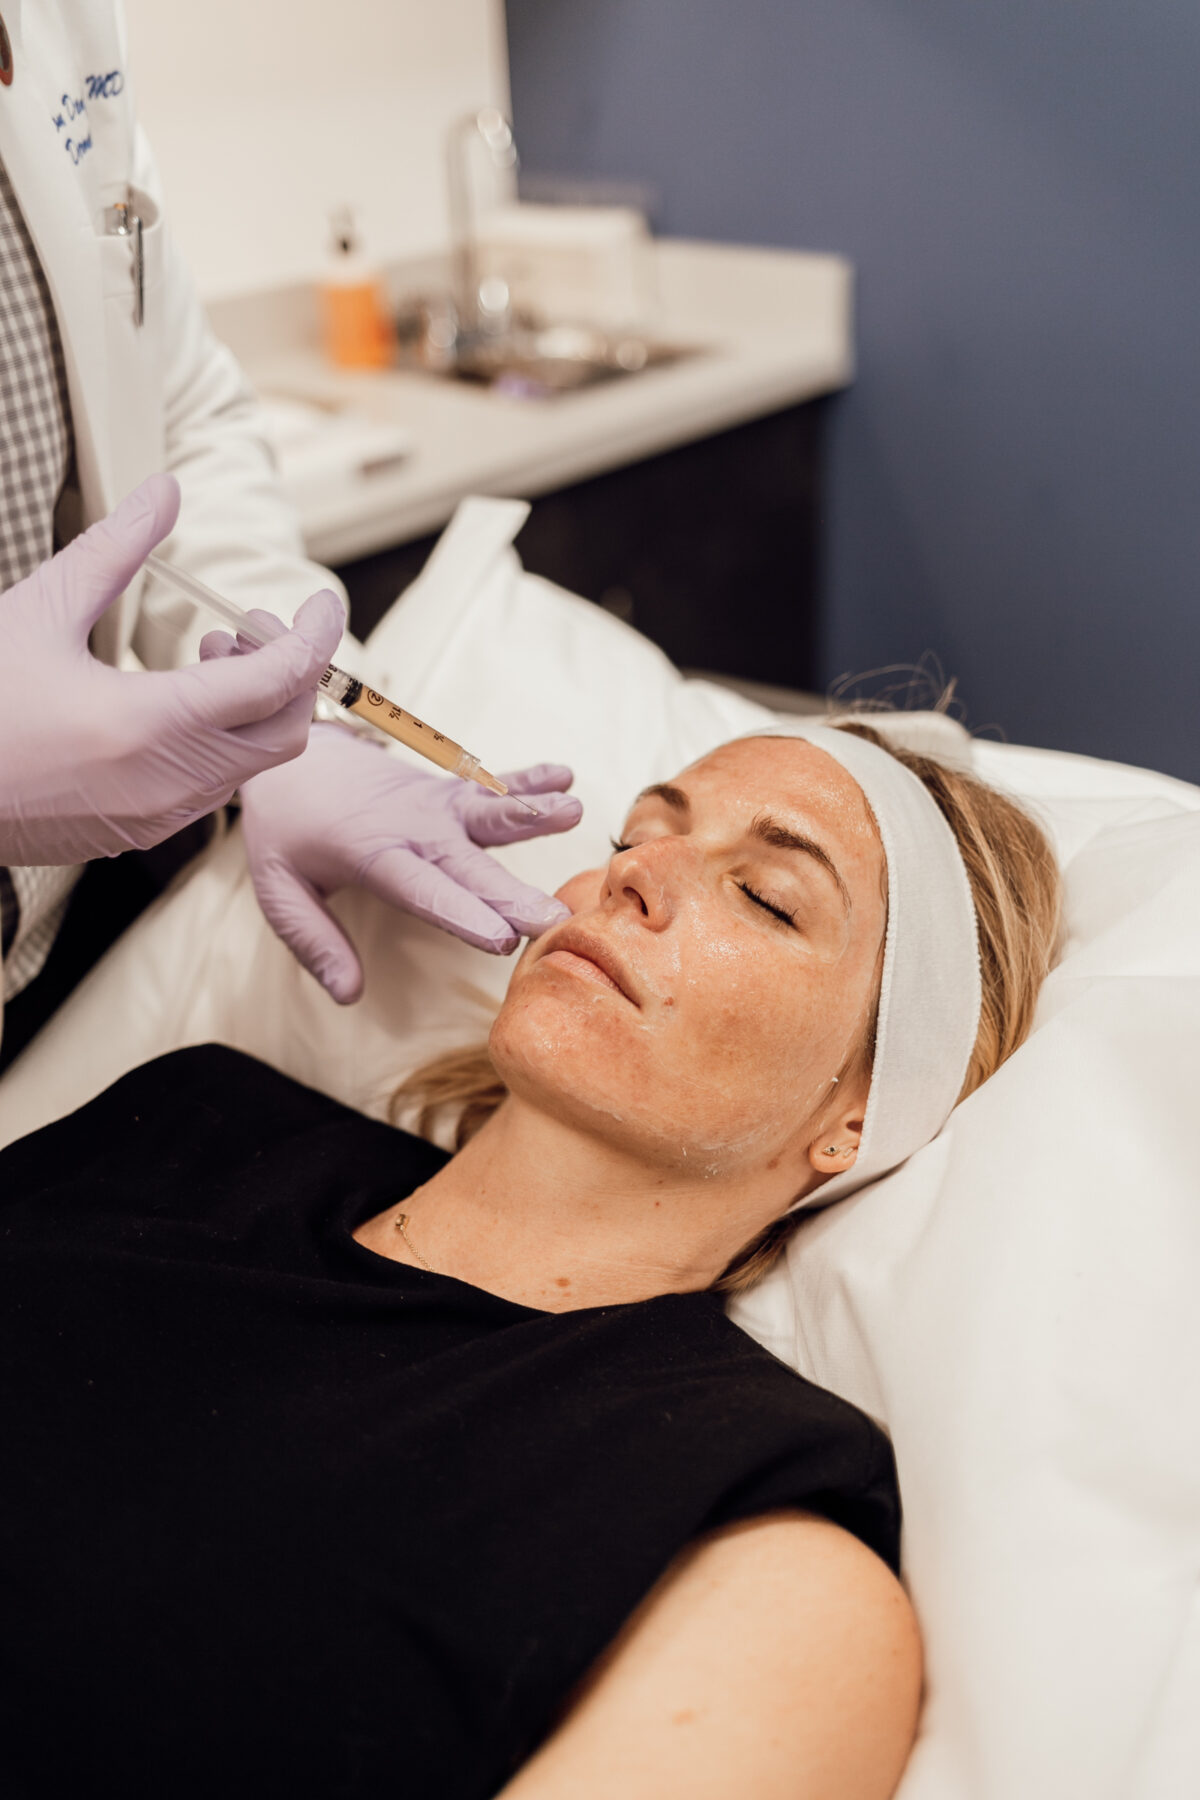 Melasma Treatment on a woman by injecting the treatment on her face